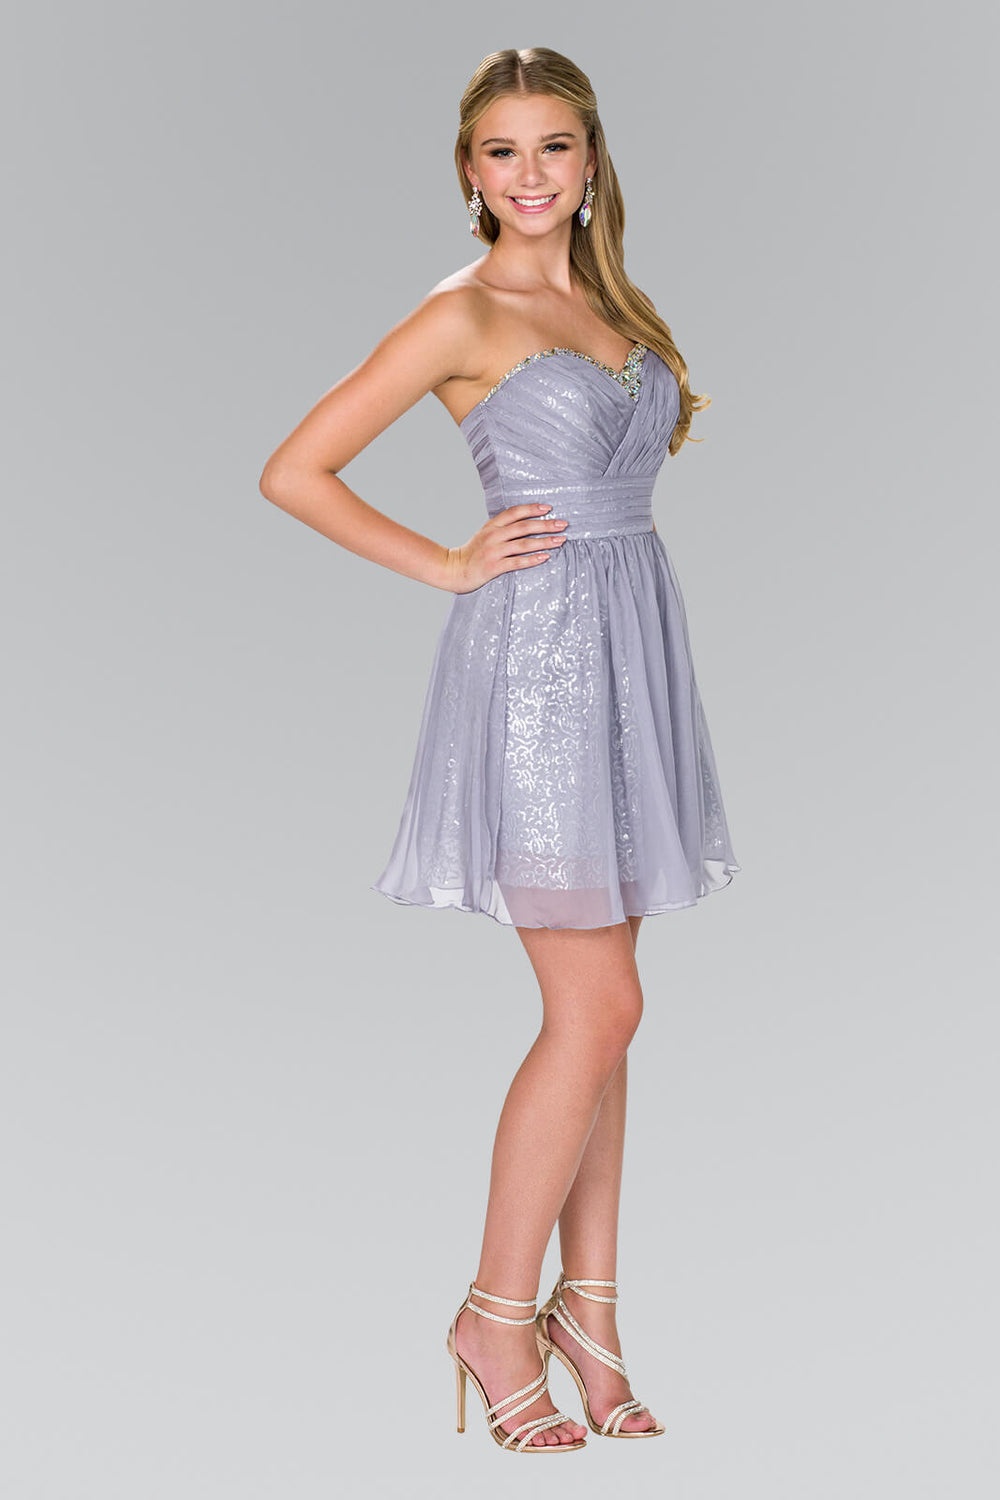 Short Strapless Sweetheart Prom Dress - The Dress Outlet Silver